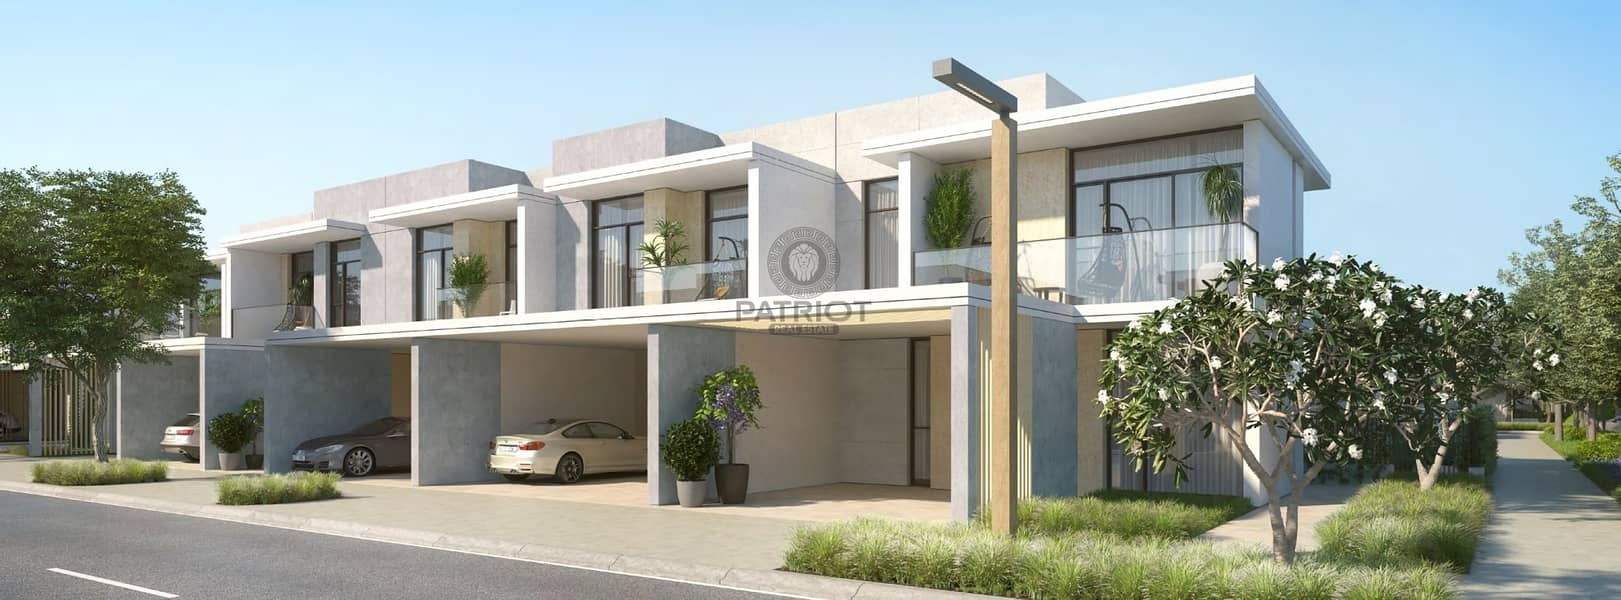 Best Priced Townhouses In The History Of Arabian Ranches